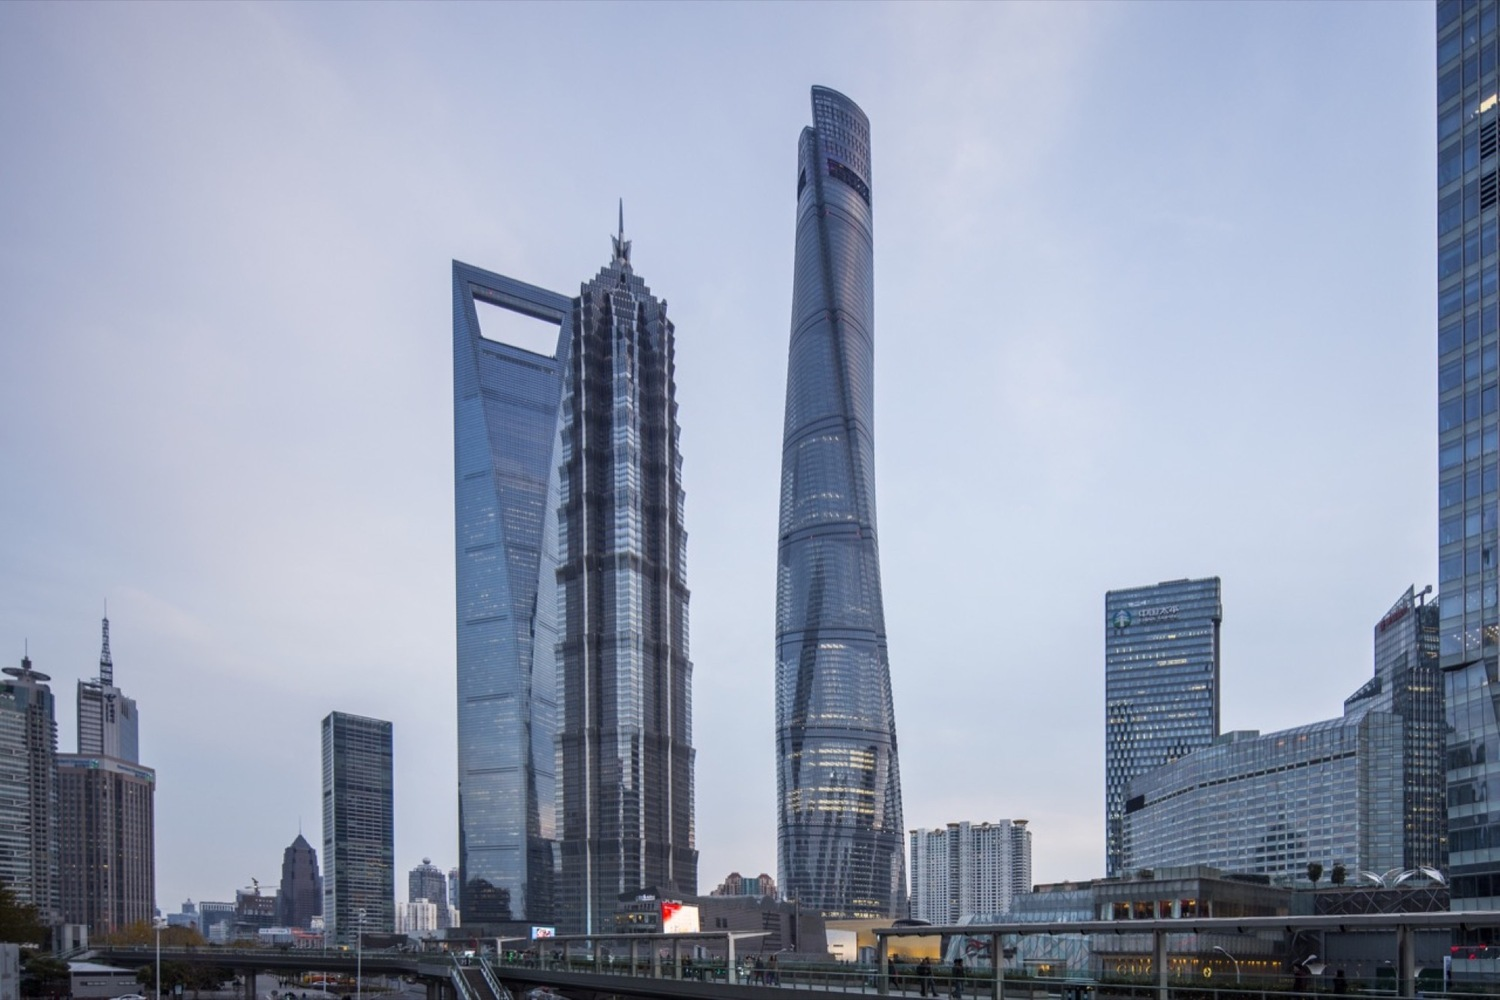 Shanghai tower - gensler - igs magazine - projects - 1